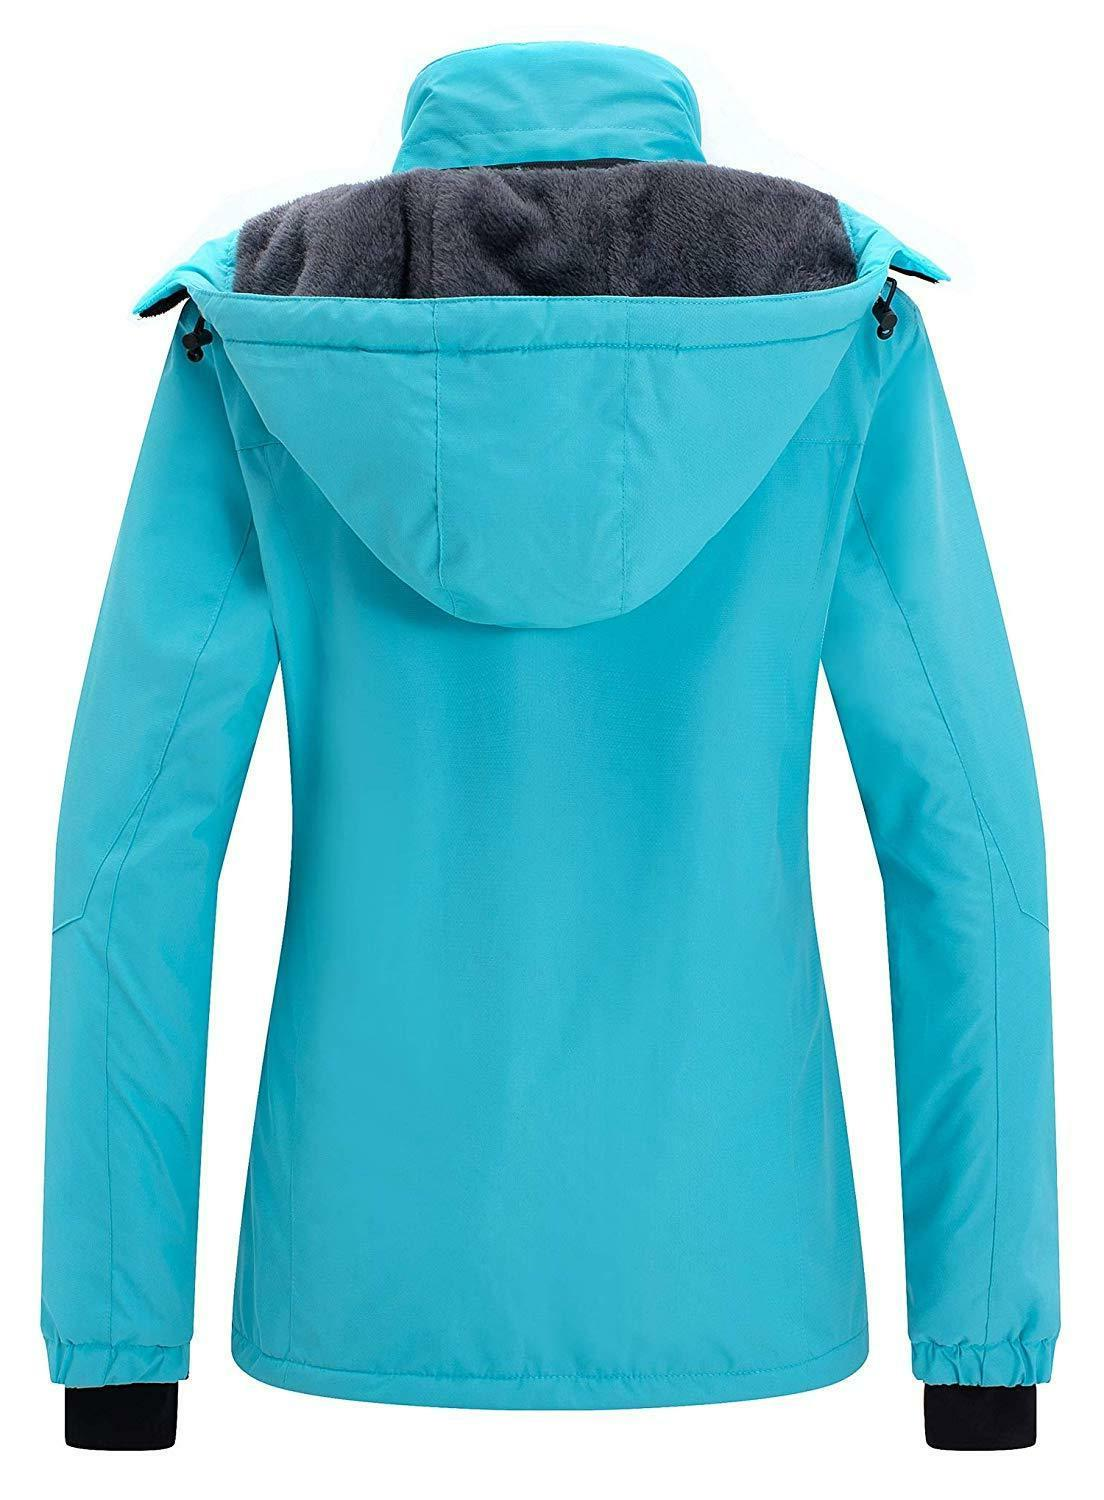 Wantdo Women's Mountain Rain Jacket Windproof Fleece Coat